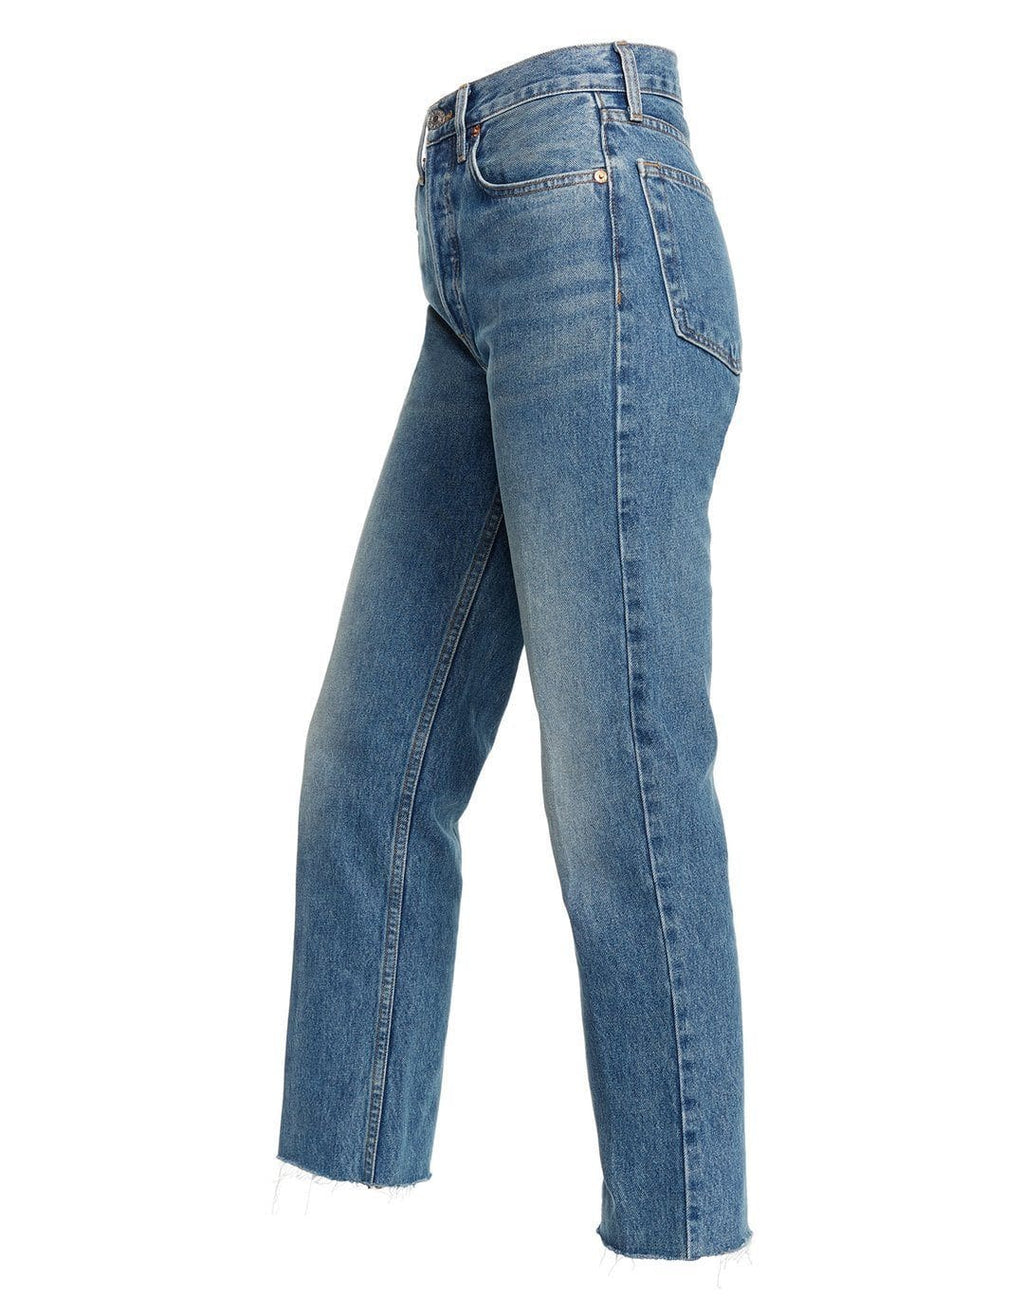 Rigid Stove Pipe high-rise jeans Jean RE/DONE